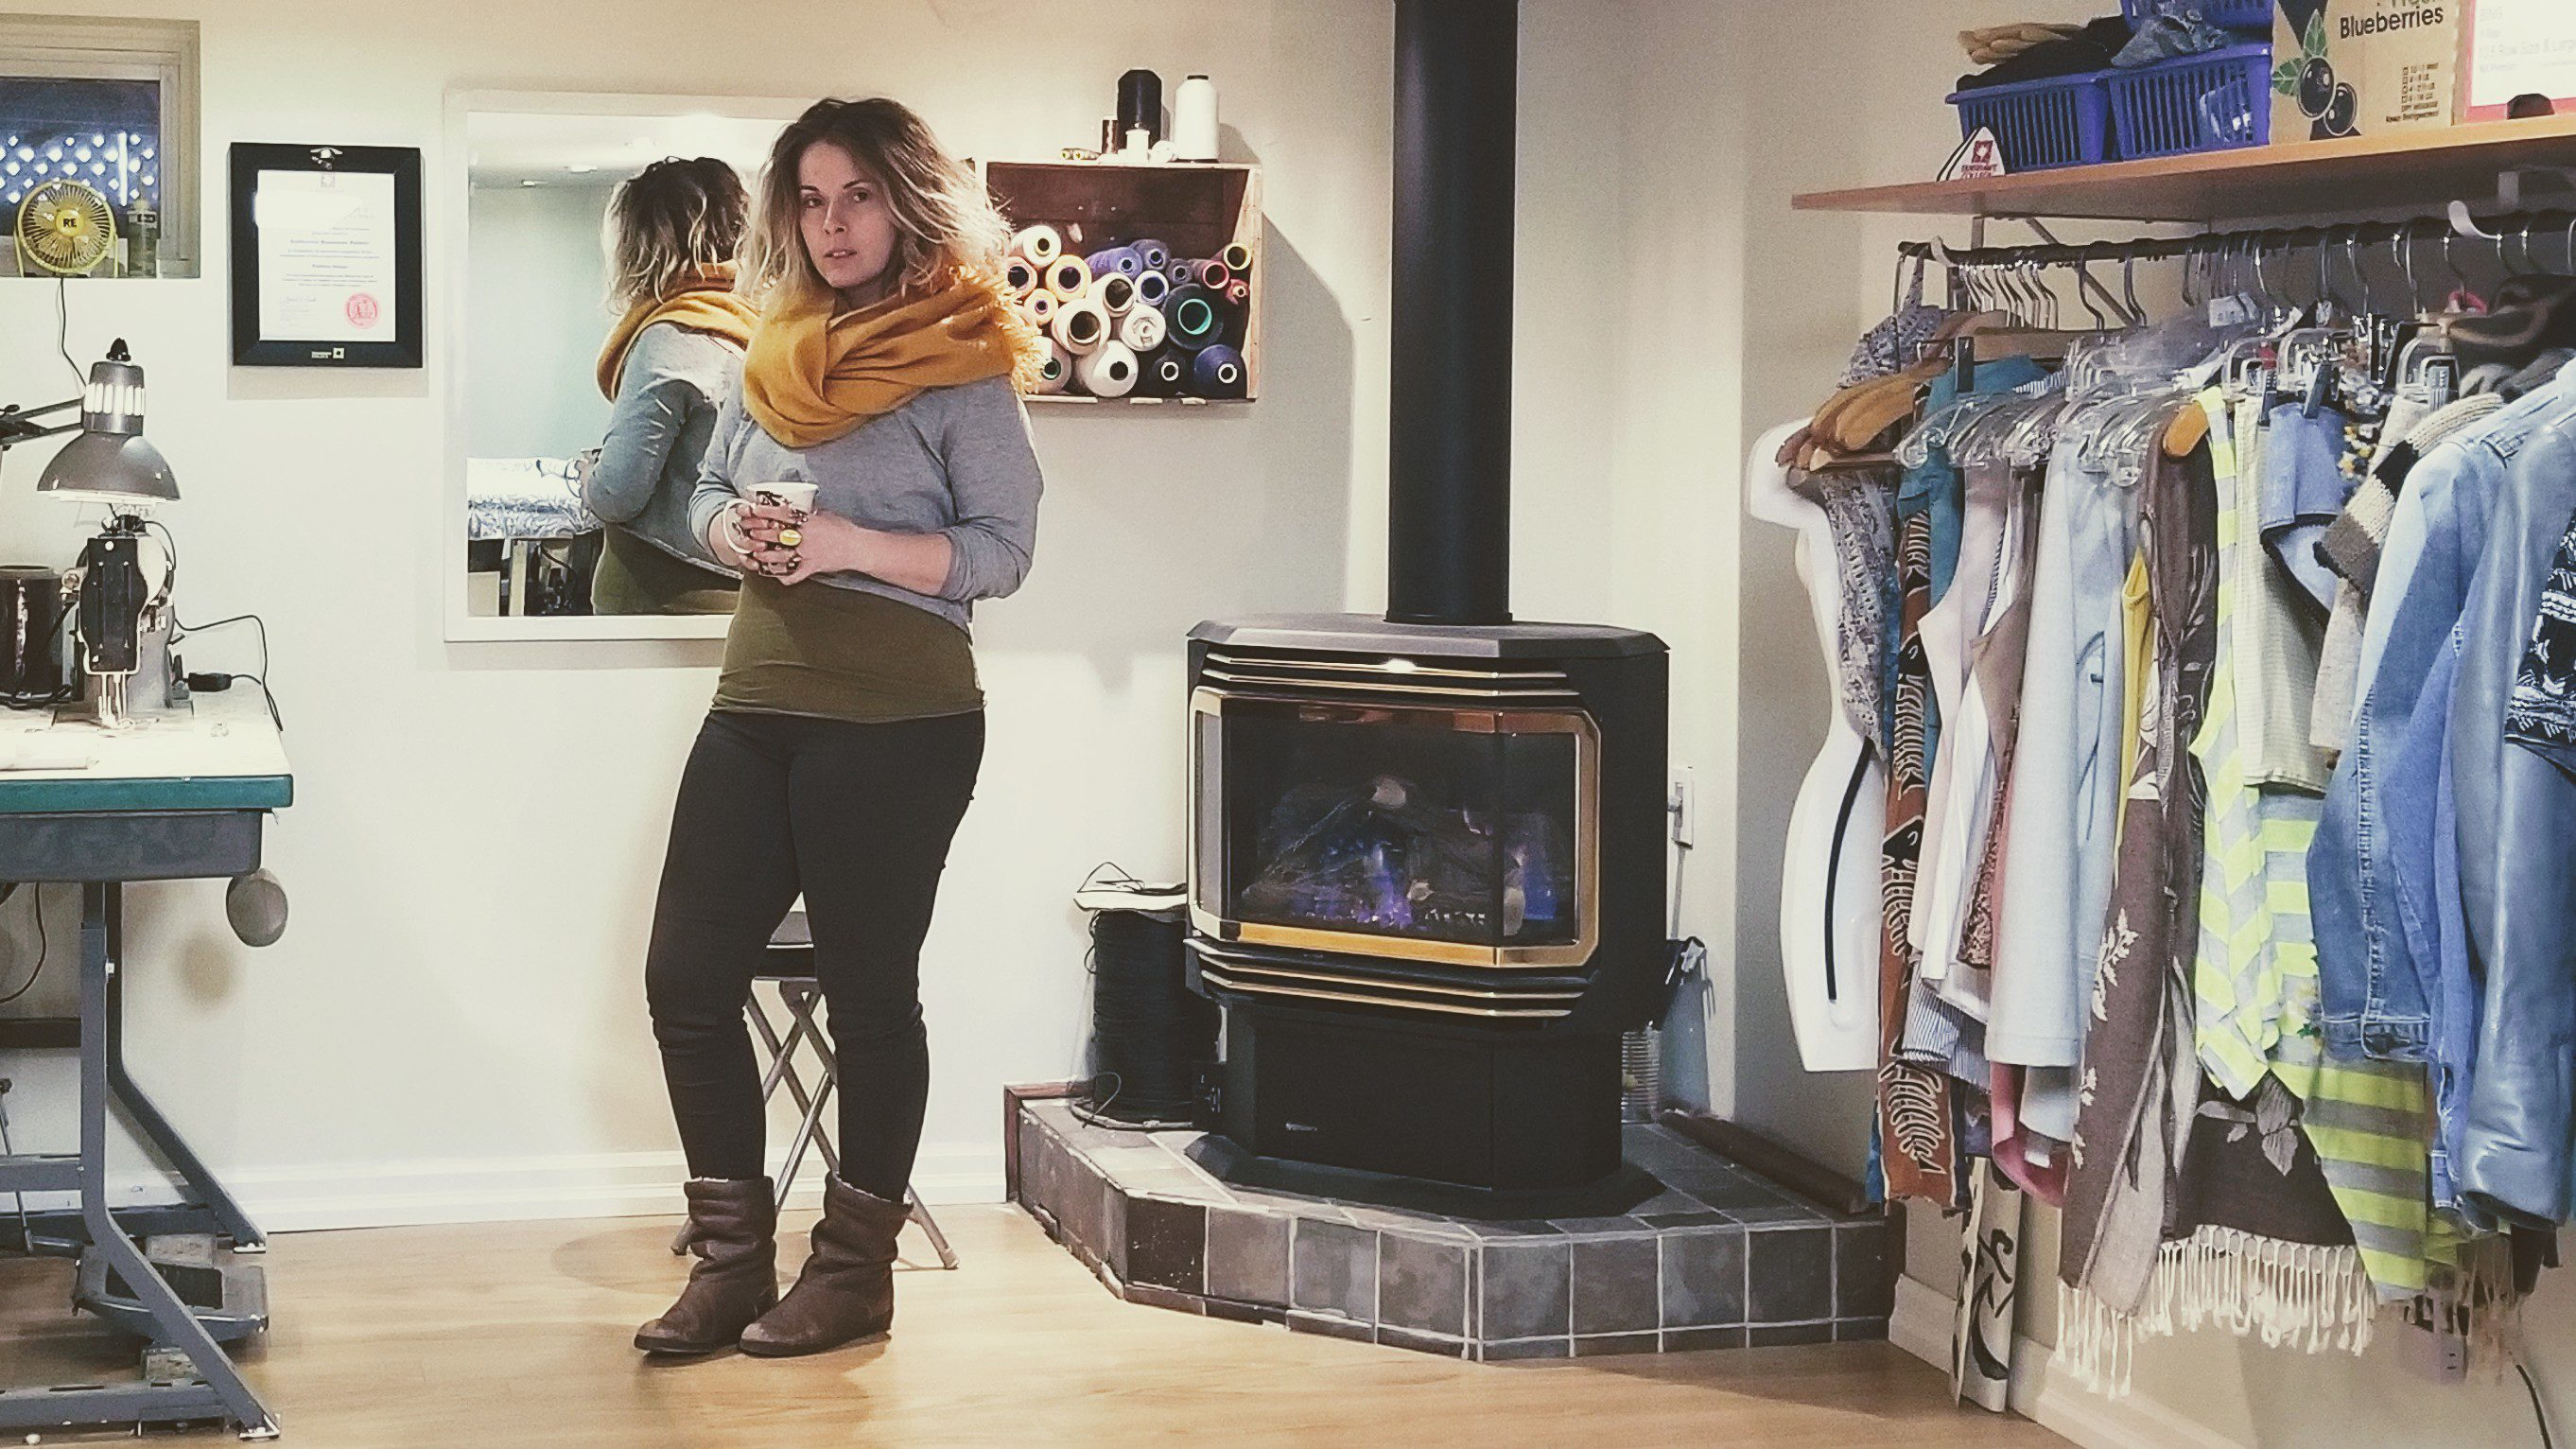 Woman standing next to fire place and large rack of clothing.